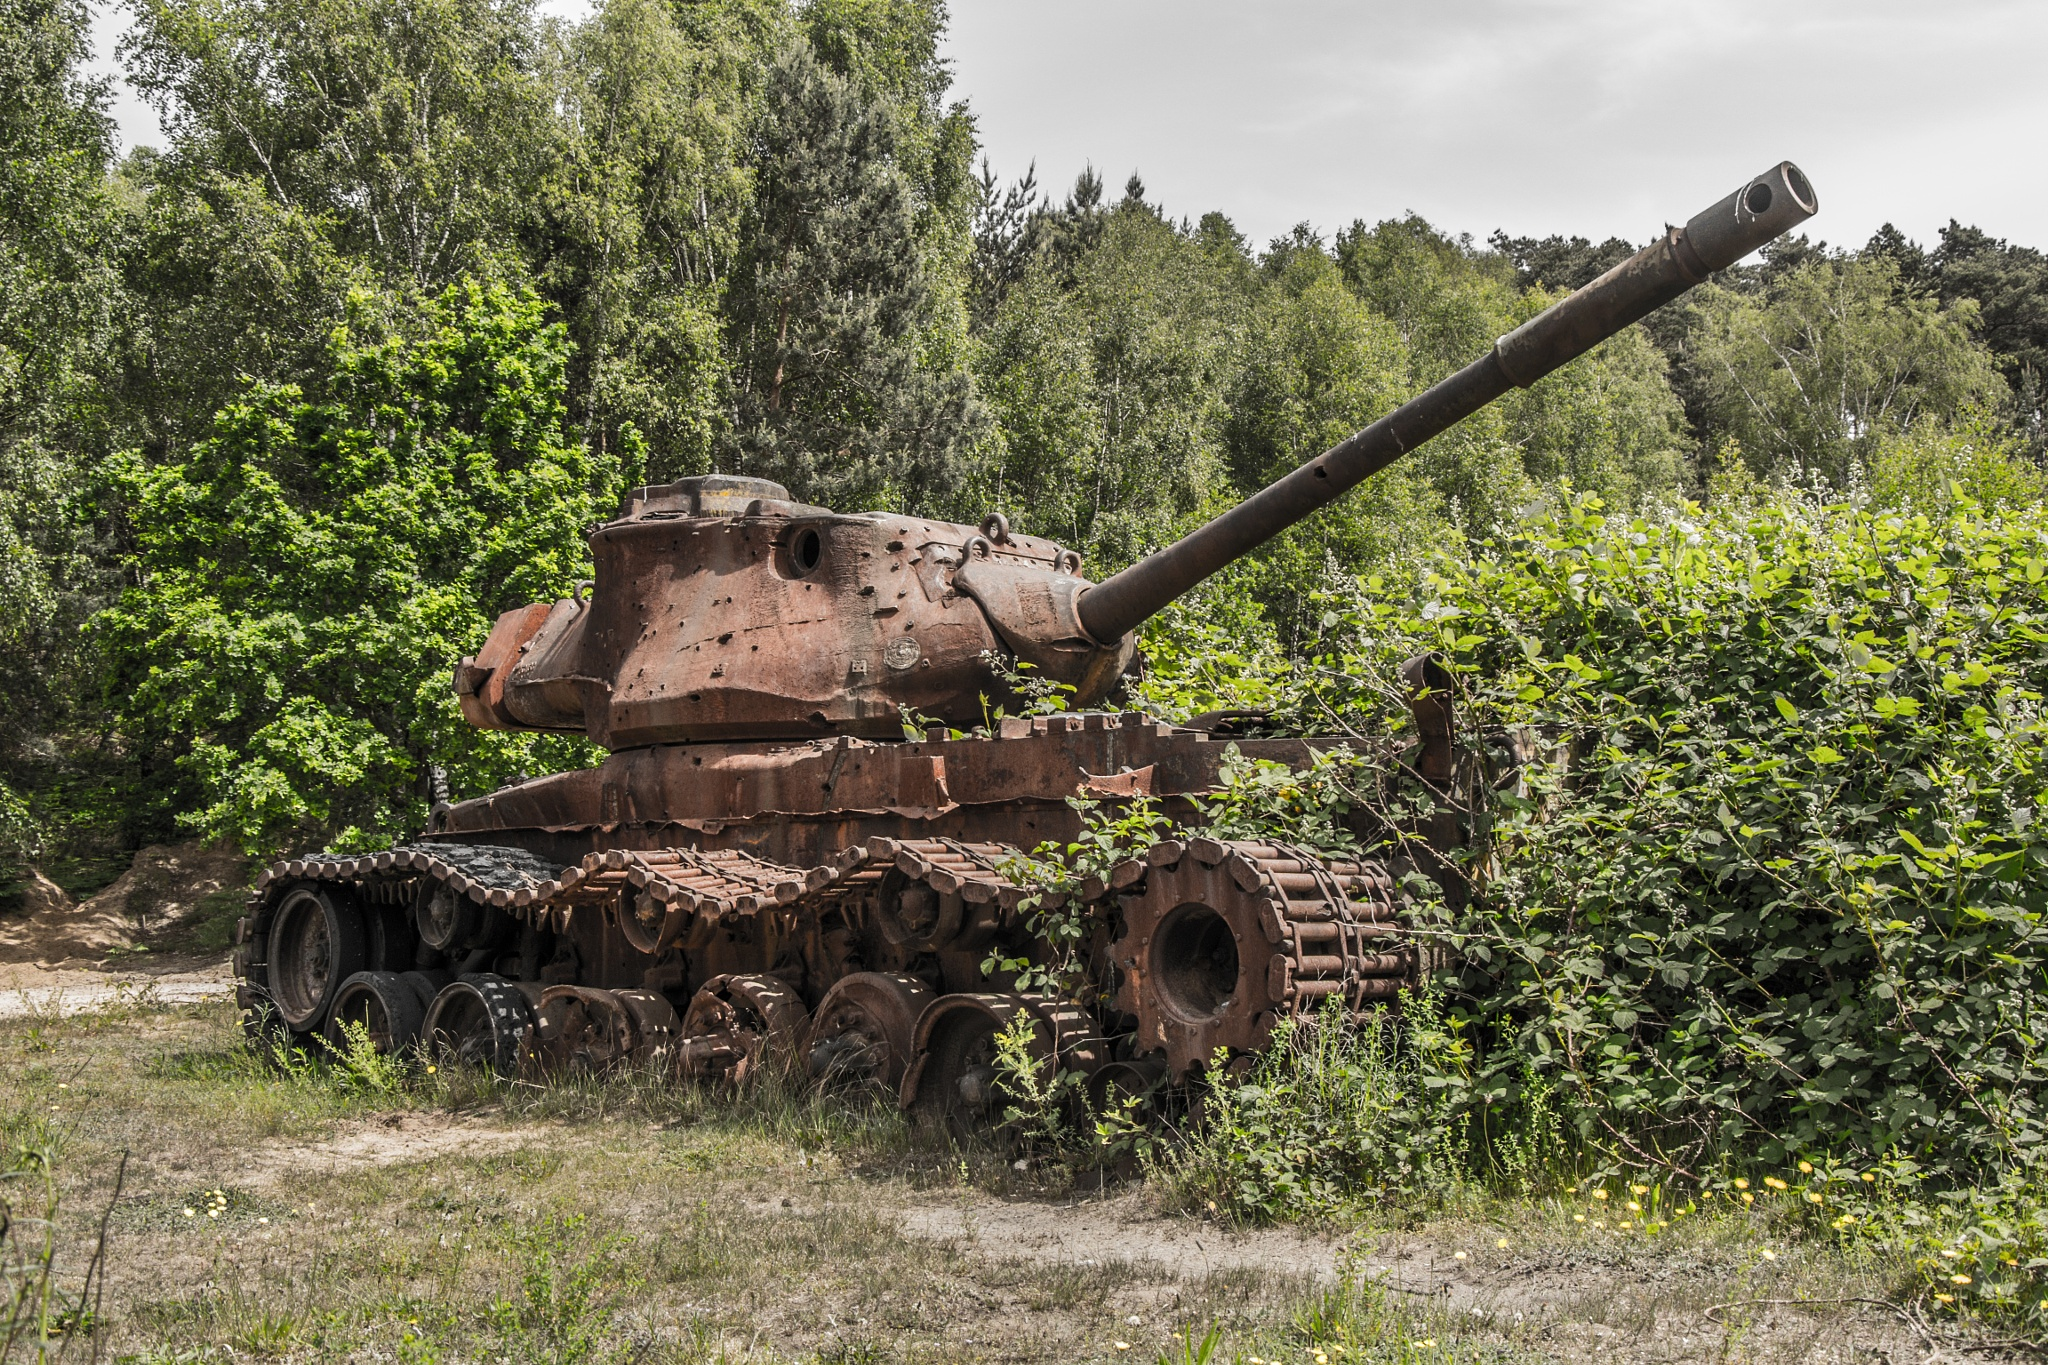 Tank in Wood by mb-disign